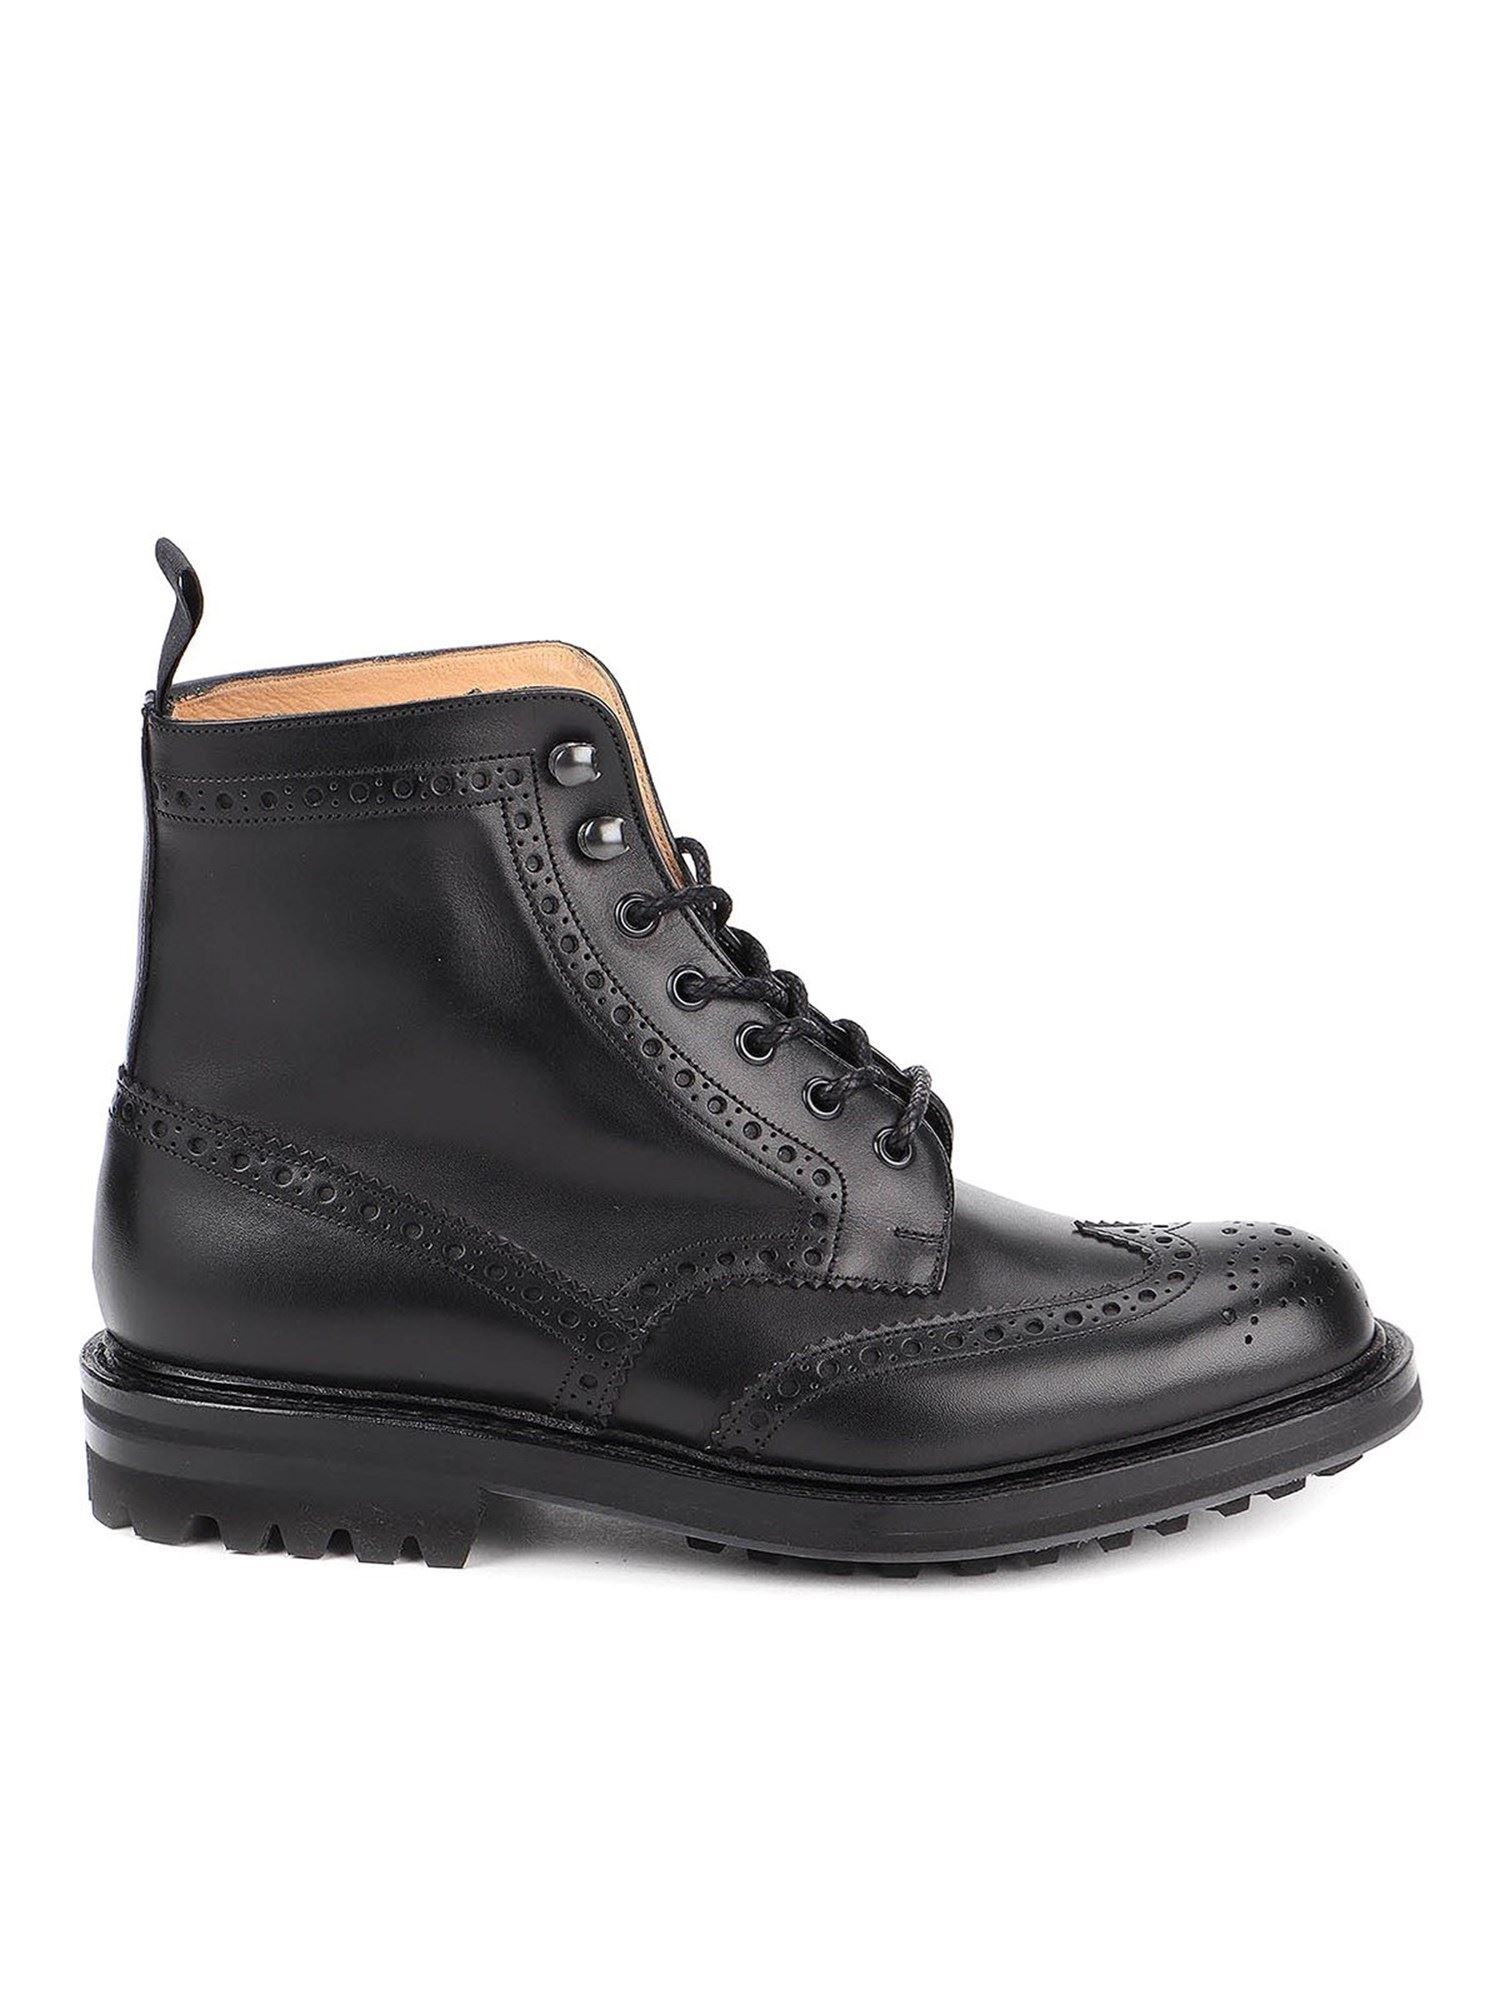 Church's Leathers MCFARLANE COMBAT BOOTS IN BLACK